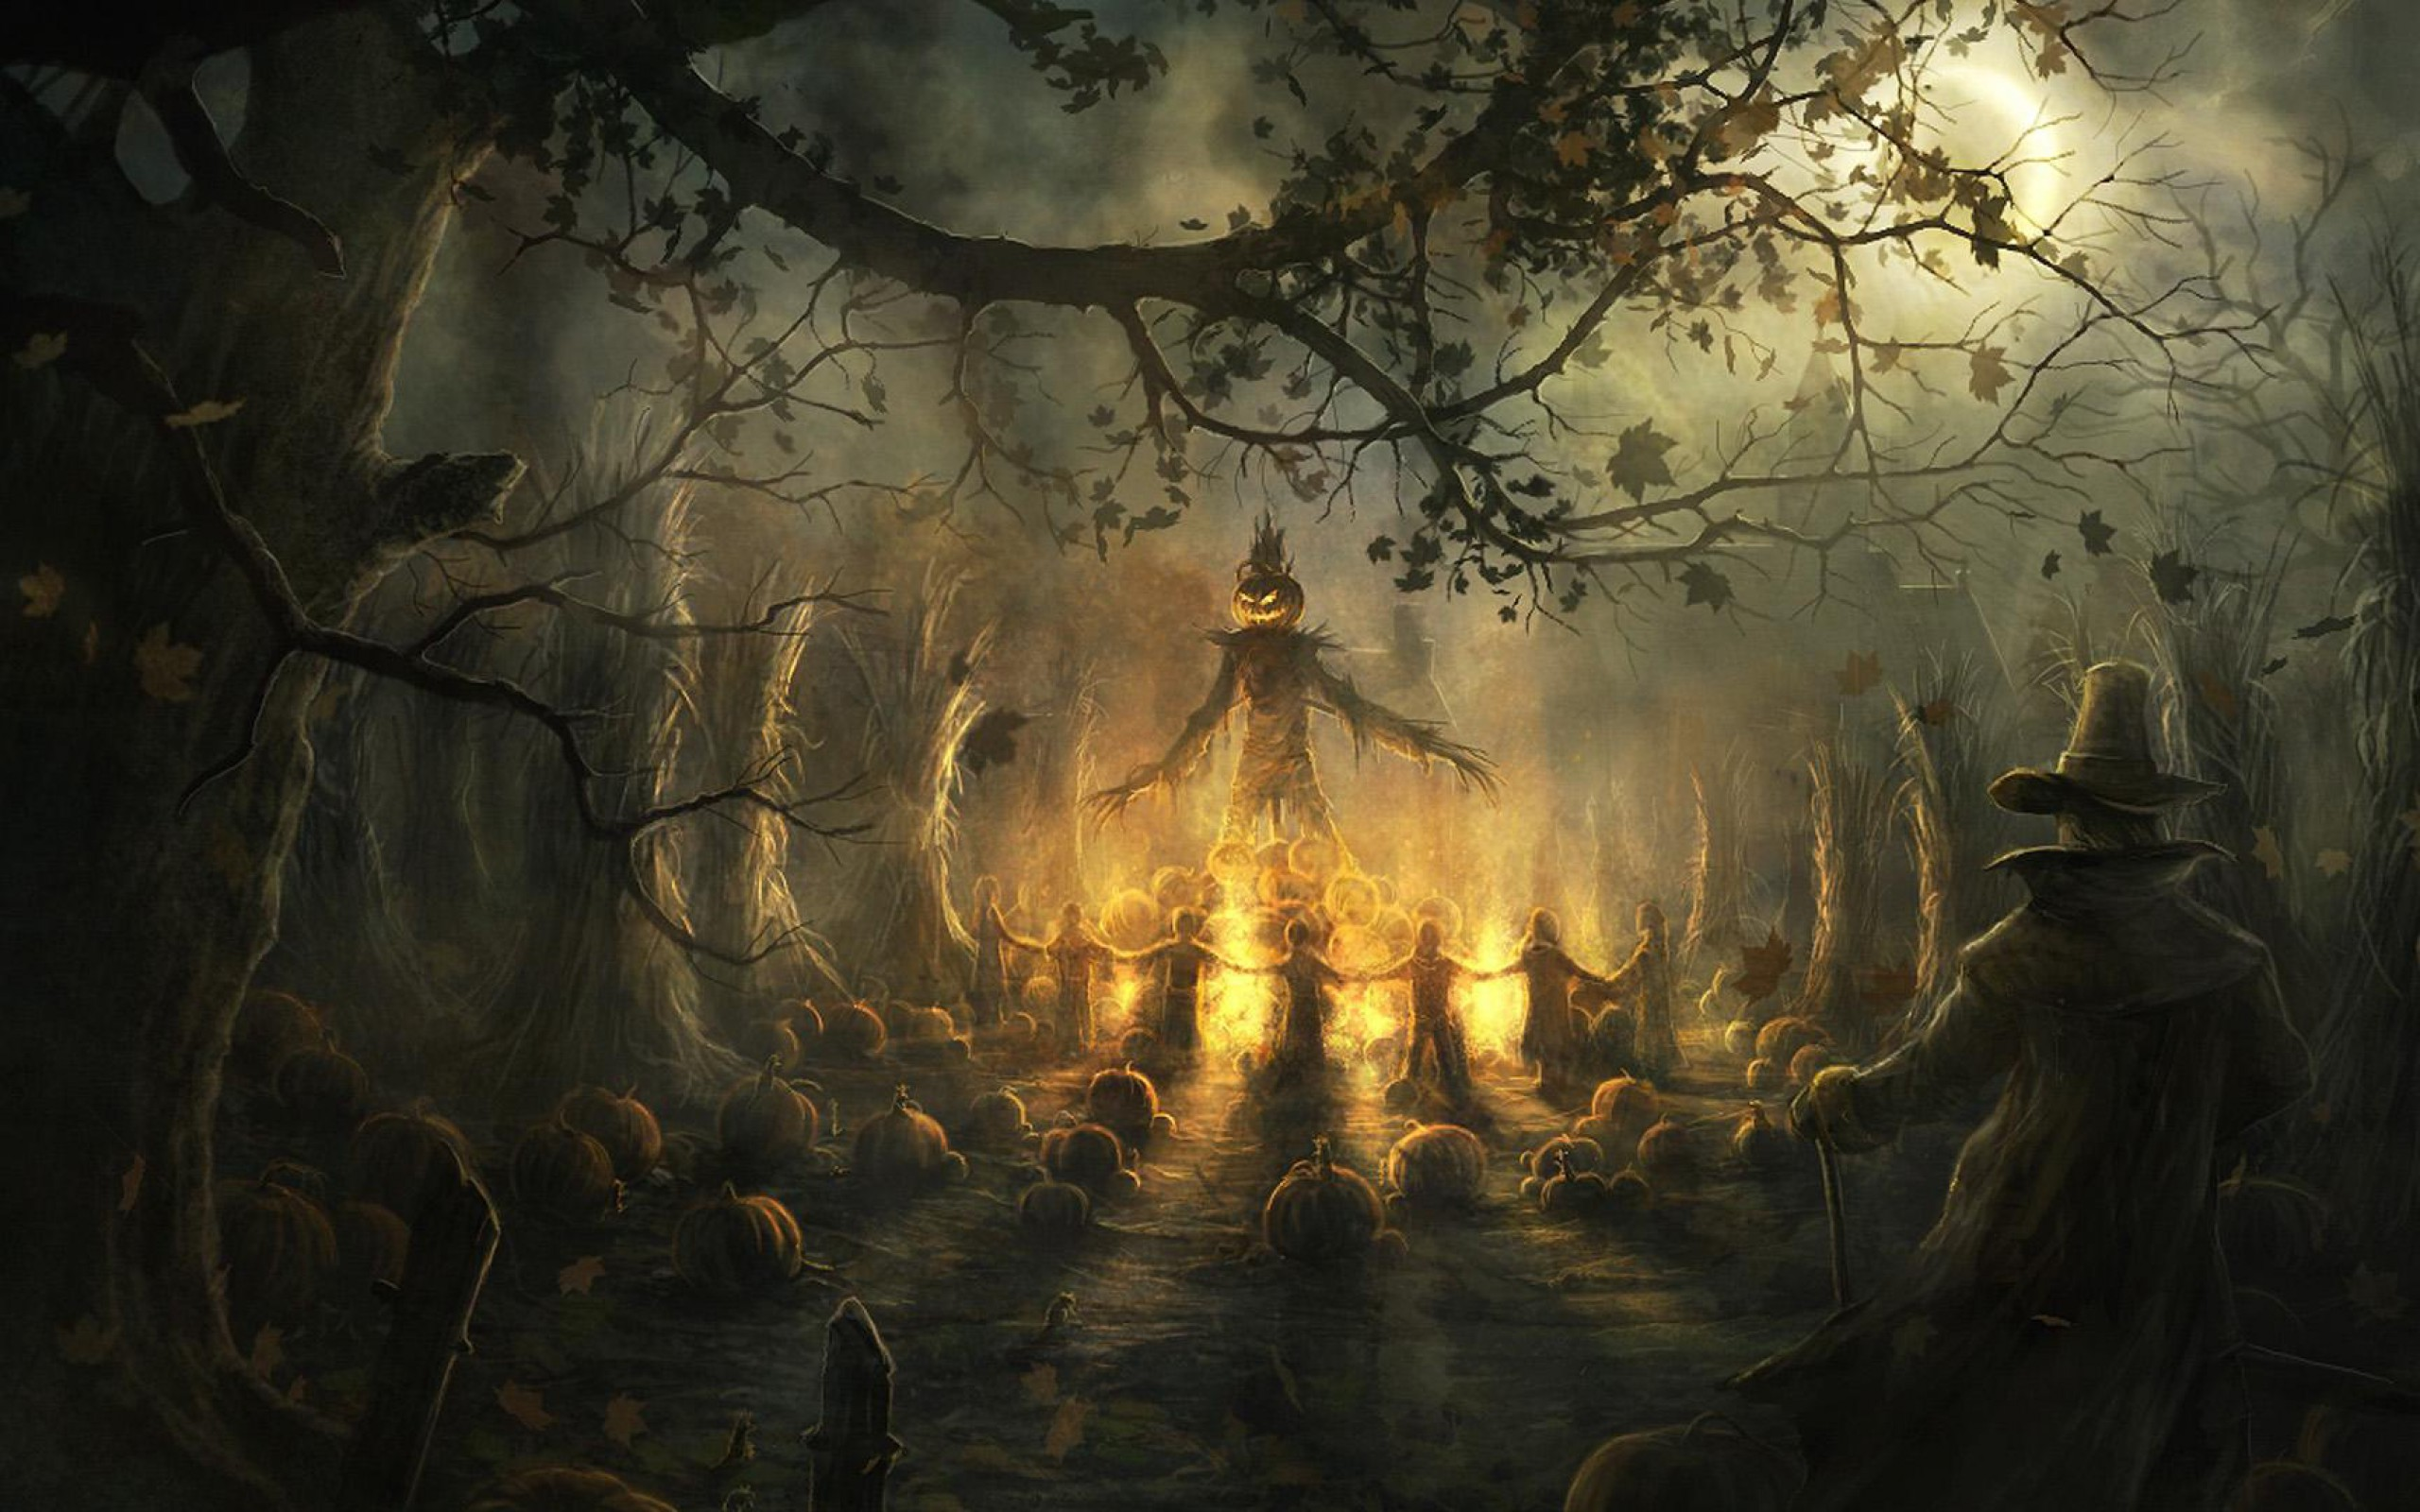 Sizzling Halloween-Wallpapers